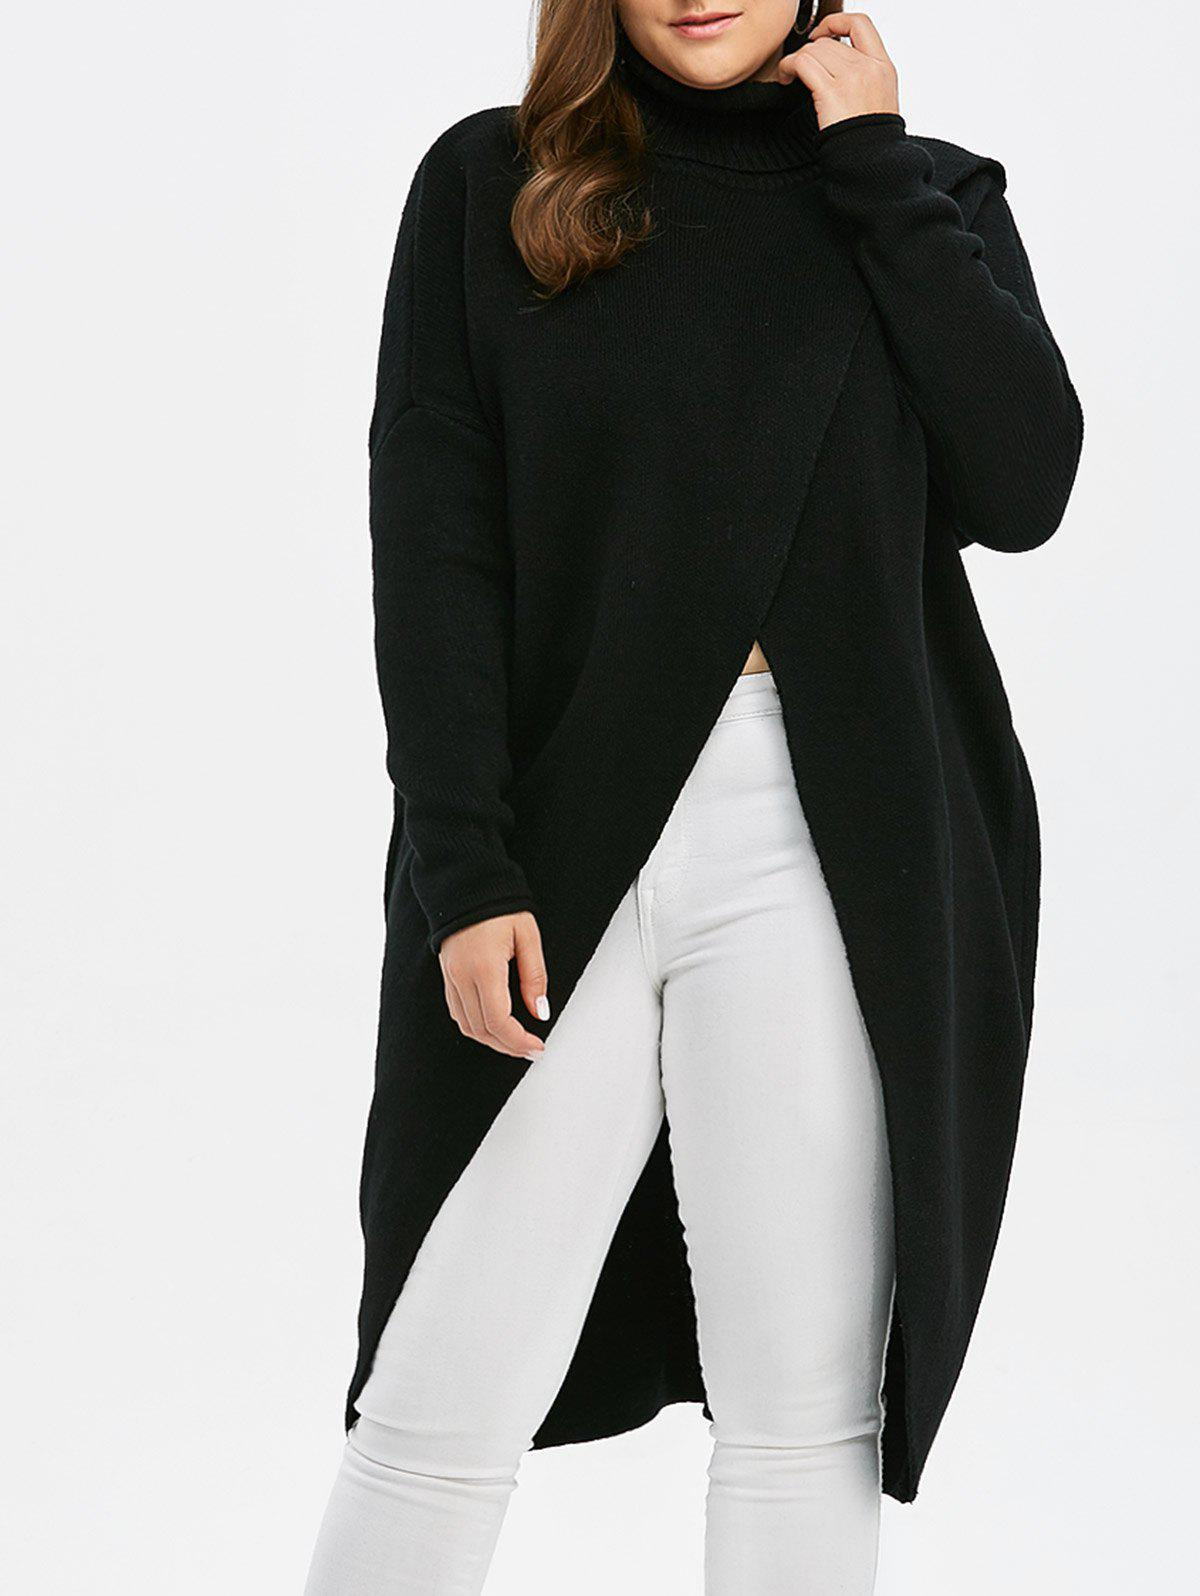 Plus Size Turtleneck High Slit Midi Long SweaterWOMEN<br><br>Size: 2XL; Color: BLACK; Type: Pullovers; Material: Acrylic,Polyester; Sleeve Length: Full; Collar: Turtleneck; Style: Fashion; Season: Fall,Spring; Pattern Type: Solid; Weight: 0.550kg; Package Contents: 1 x Sweater;